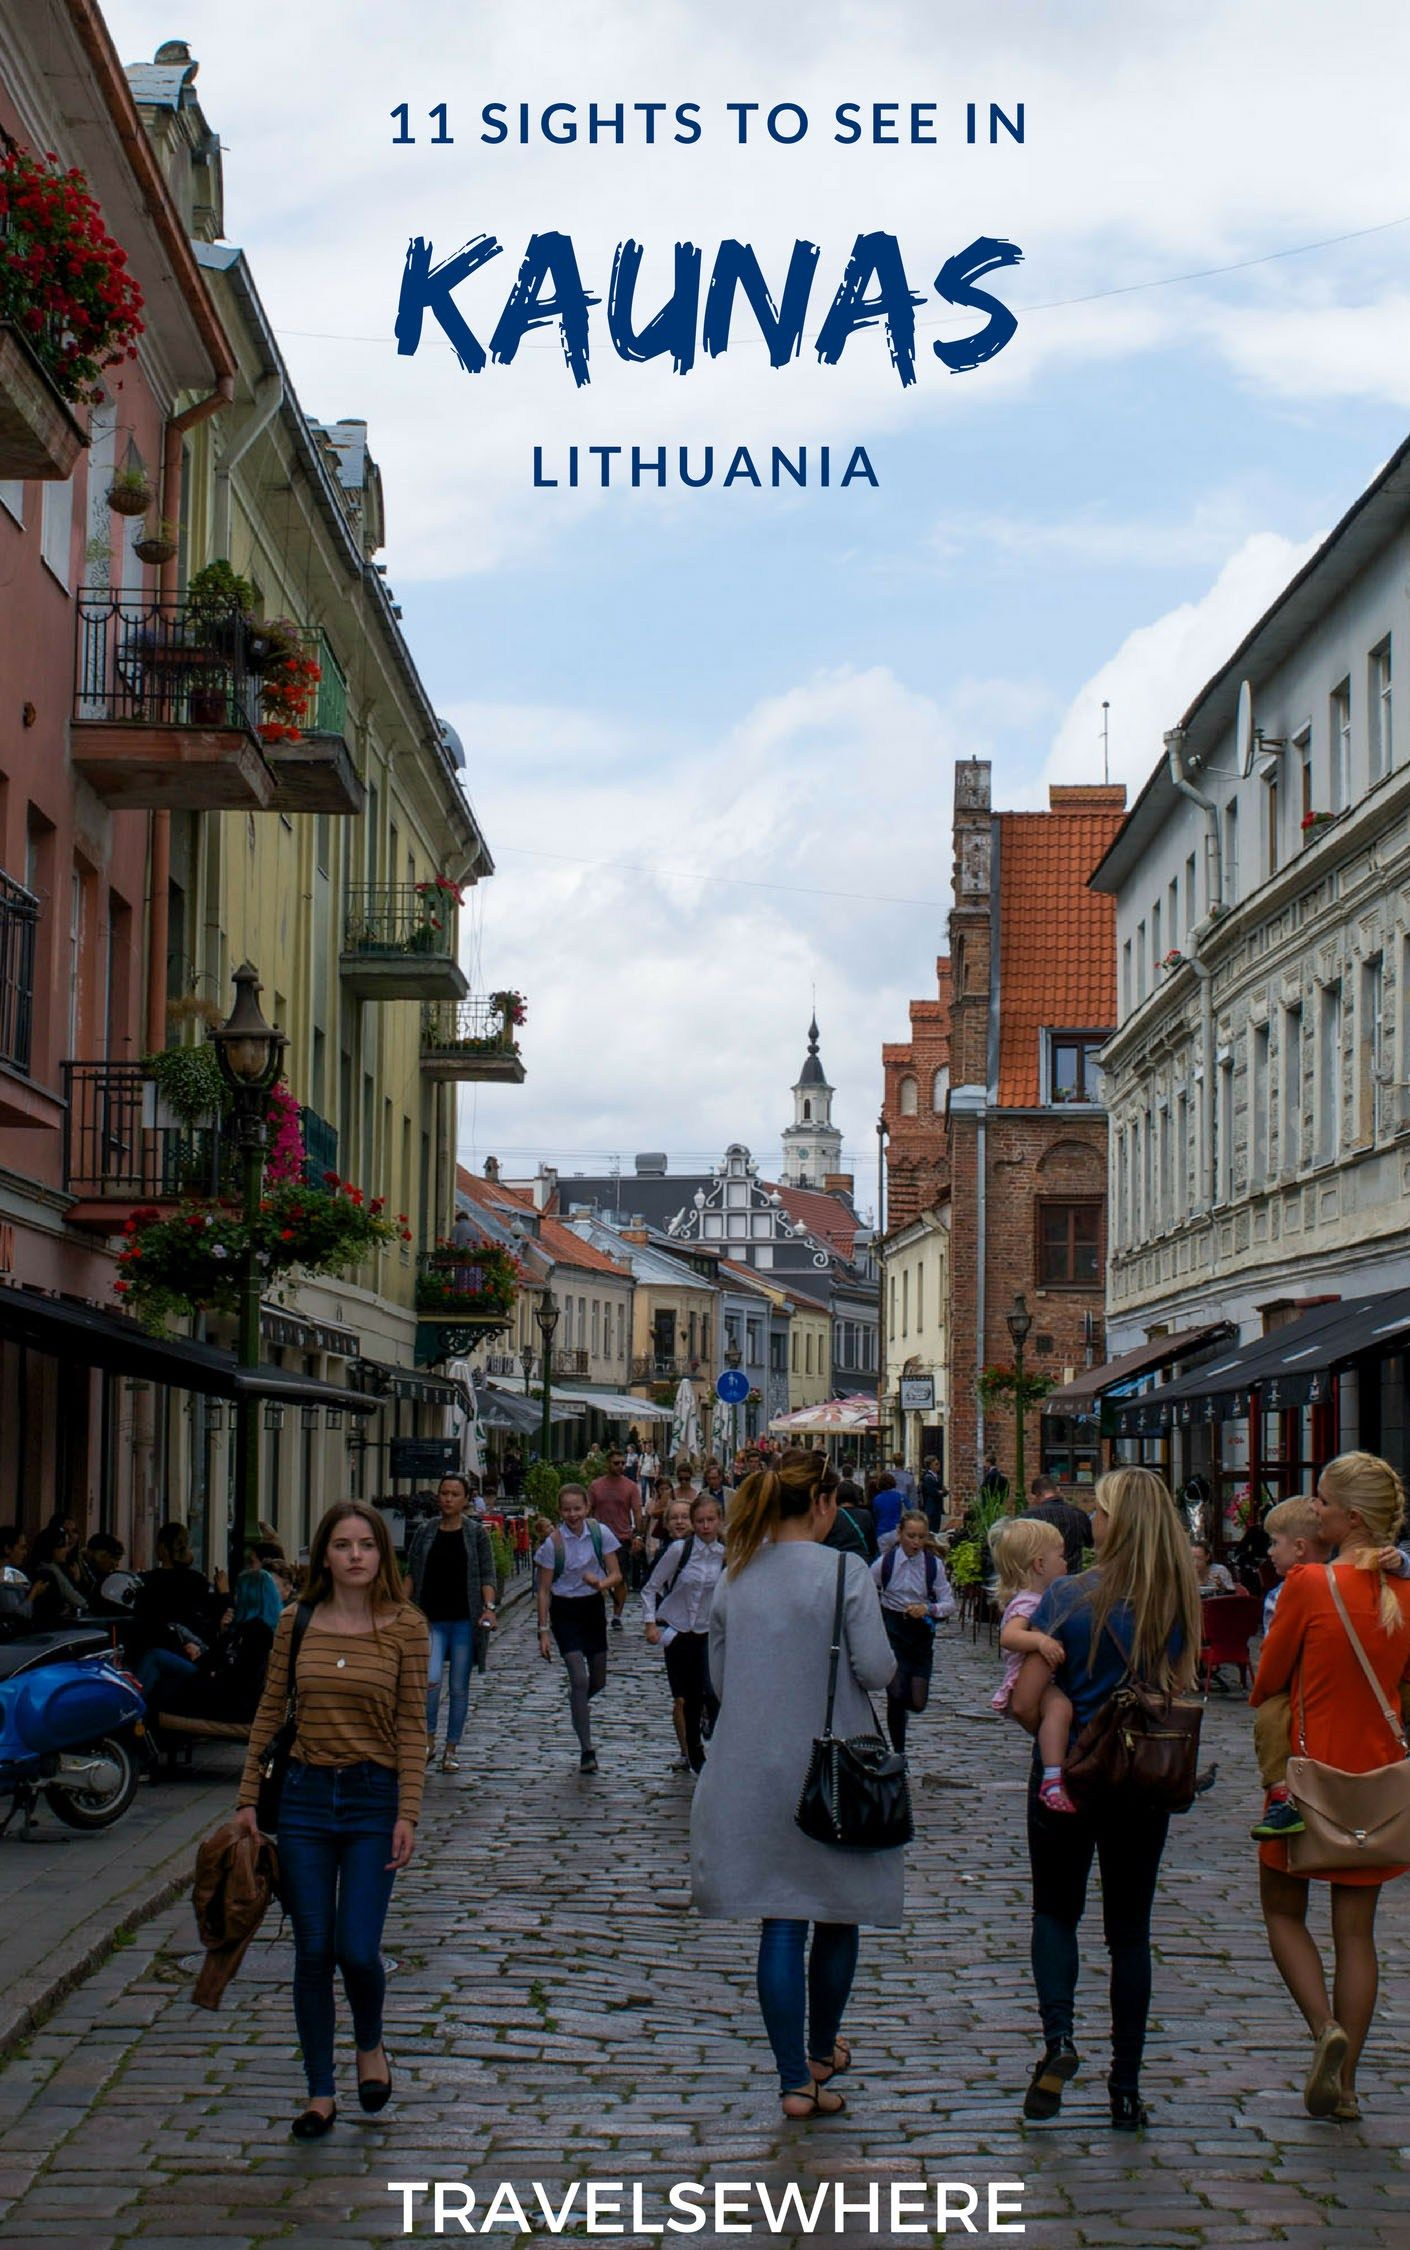 Sights of Lithuania: photos with descriptions, what to see, interesting facts 55